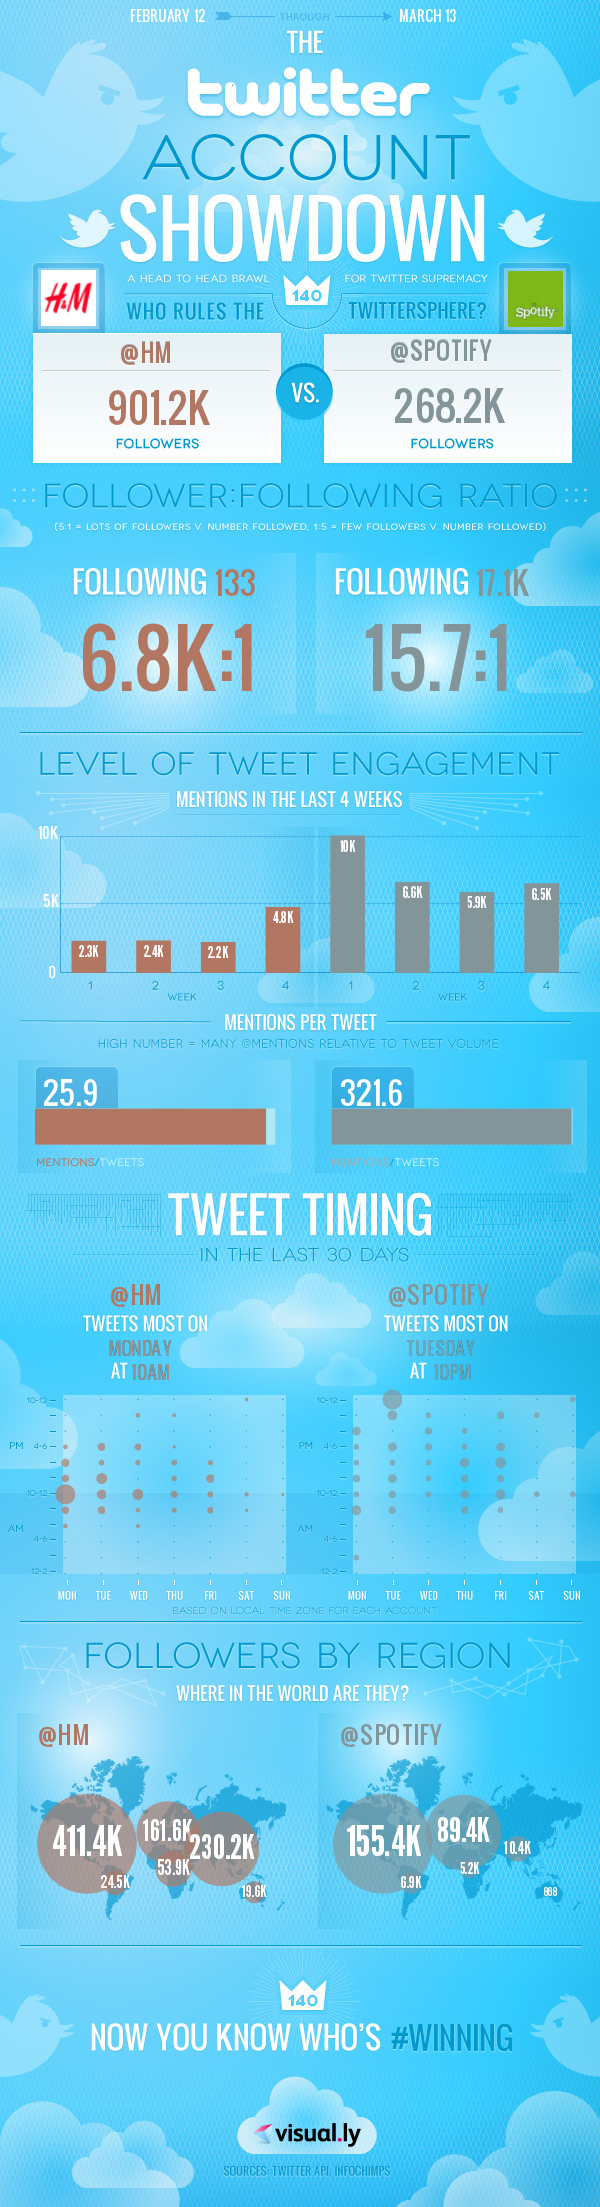 infographic-twitter